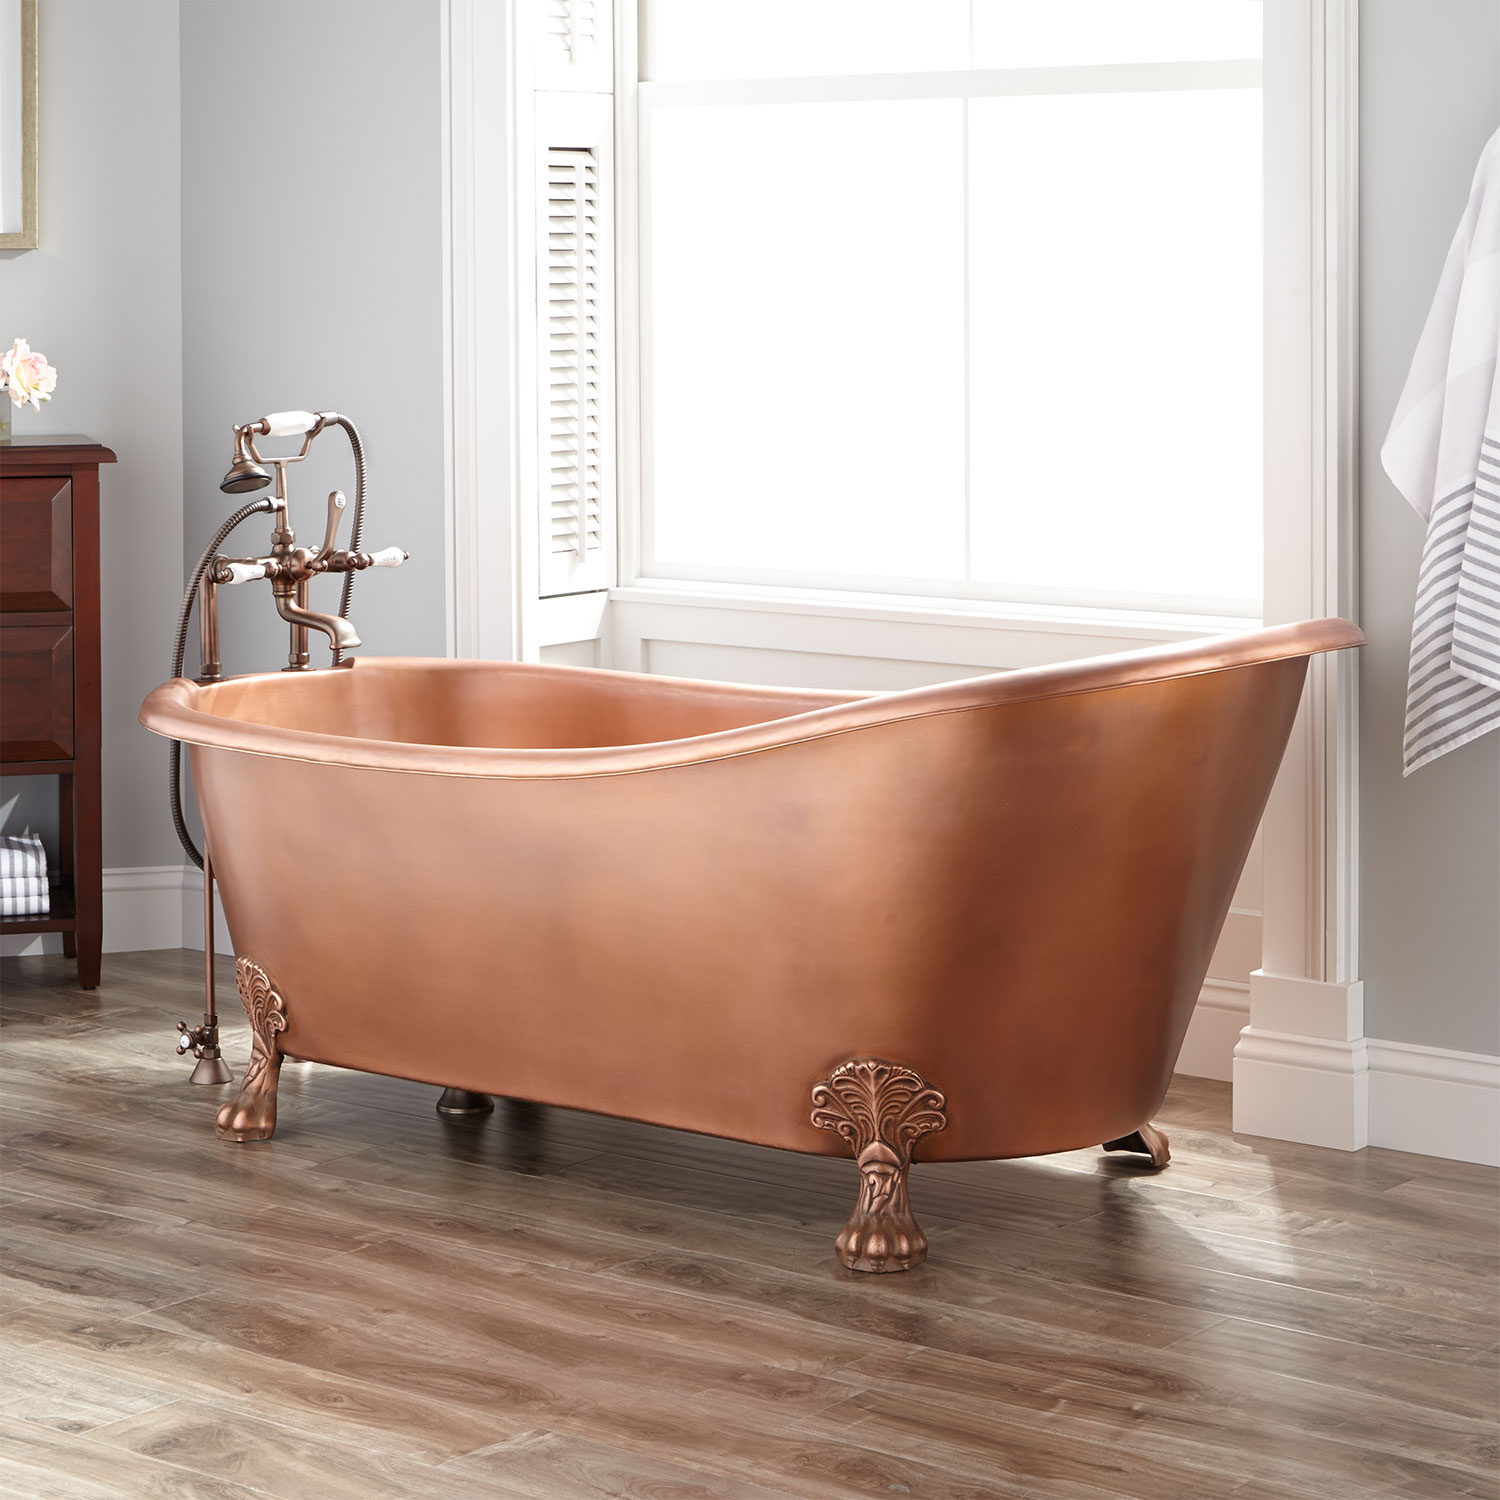 Five Ways To Update A Classic Bath Without Losing Its Charm